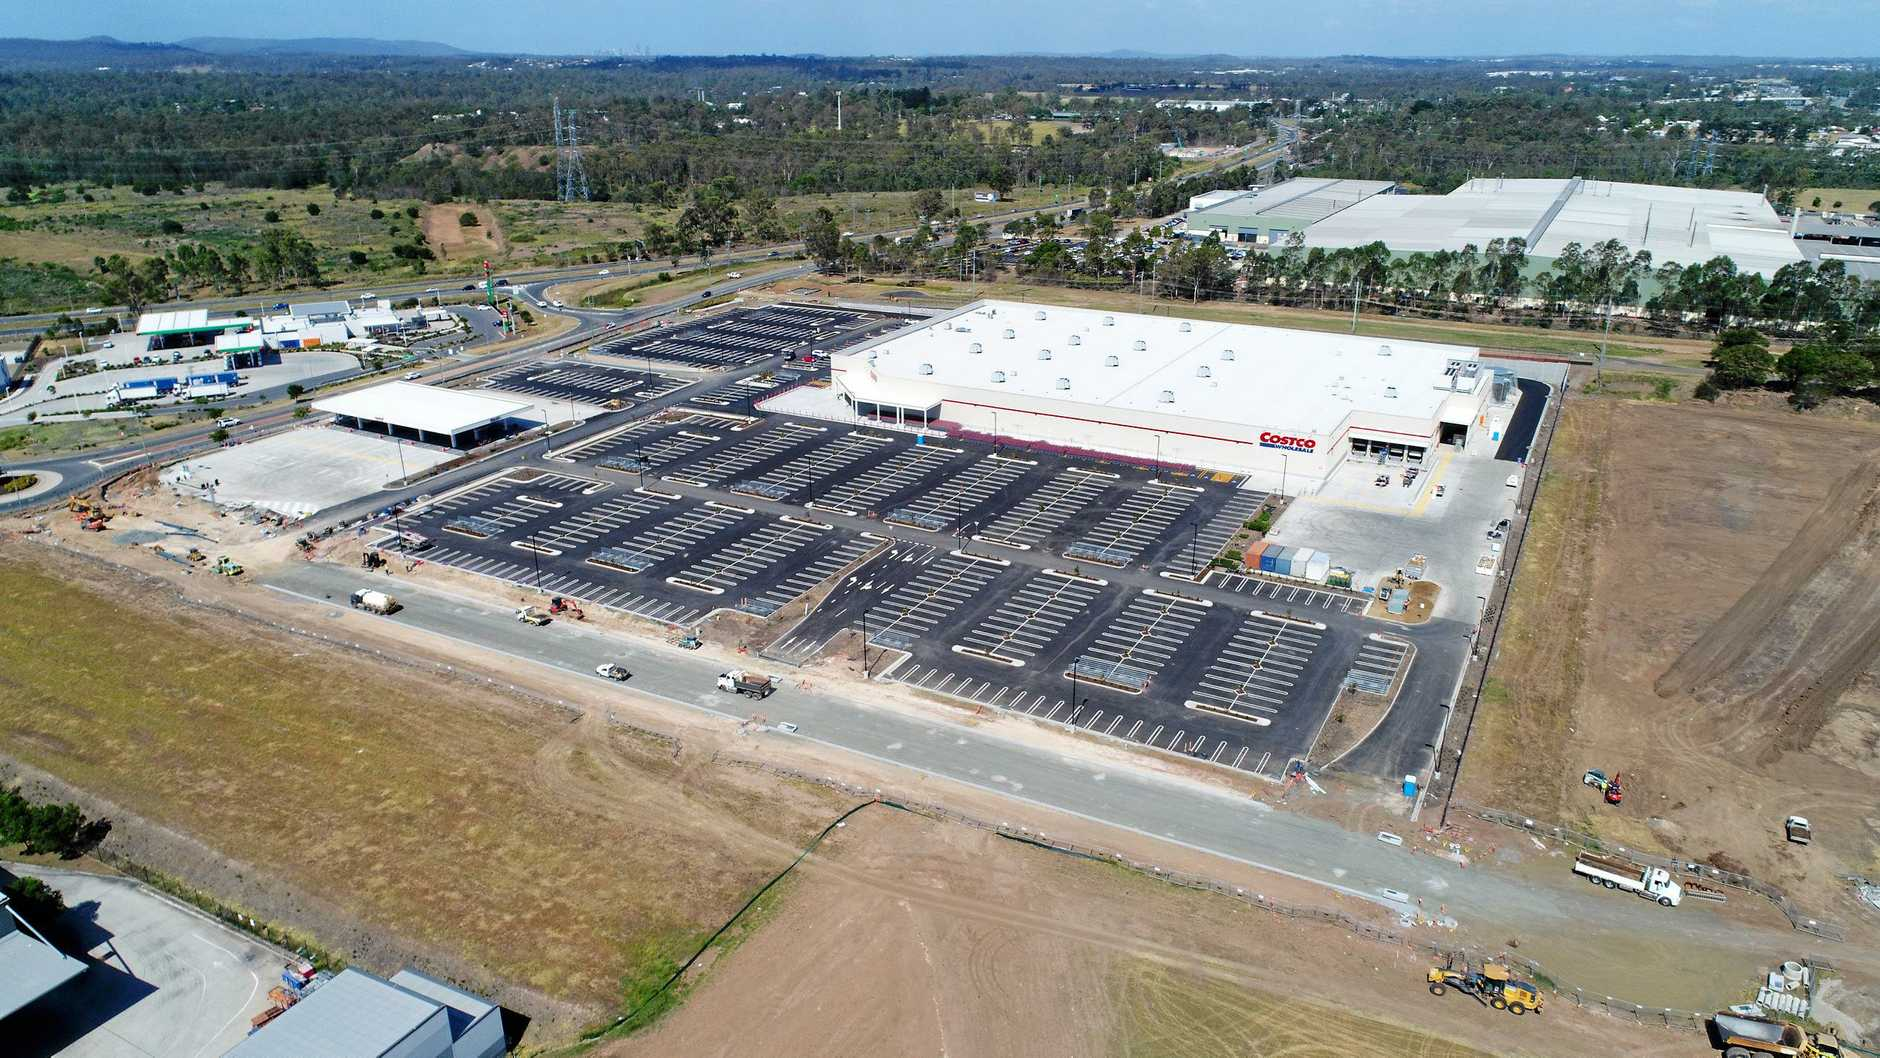 Costco at Bundamba progress photographed on December 10, 2018.